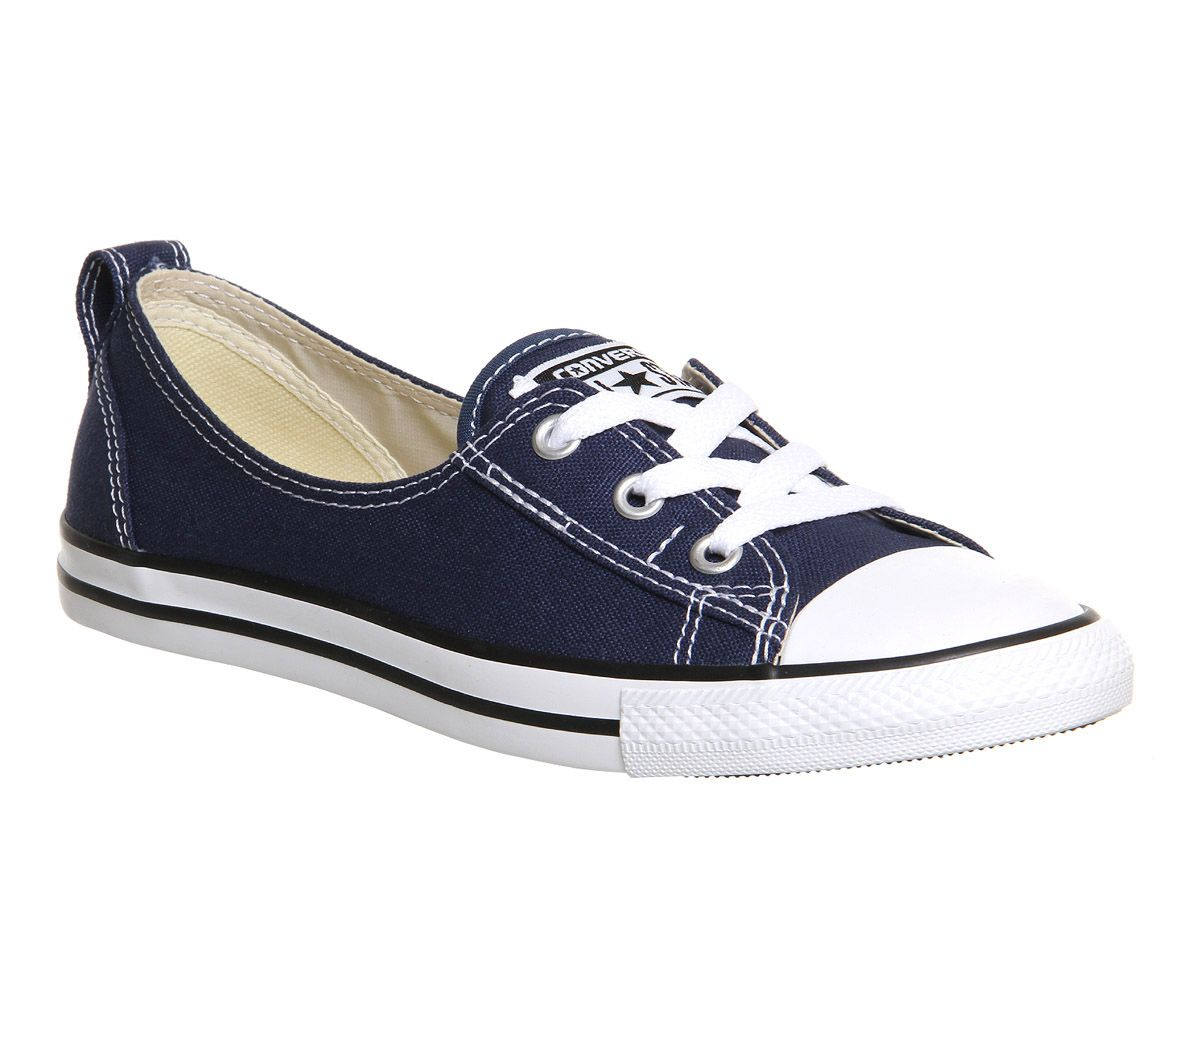 d65bcad8efdb04 Converse Ctas Ballet Lace Navy - Hers Exclusives